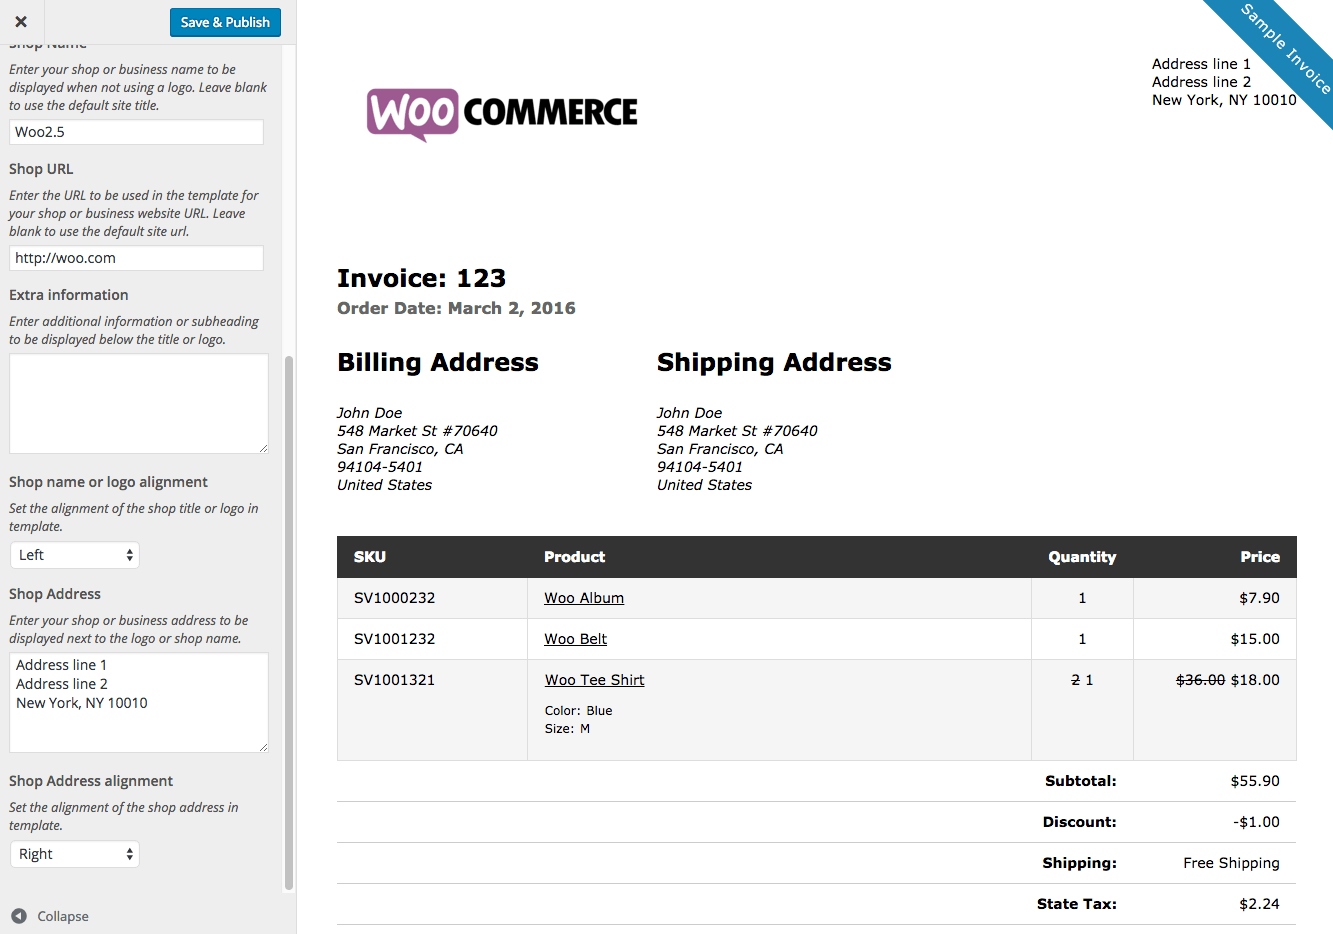 Thassosus  Surprising Woocommerce Print Invoices Amp Packing Lists  Woocommerce Docs With Goodlooking Woocommerce Print Invoices  Packing Lists Customizer With Awesome Louis Vuitton Receipt Also Target Return Policy With Receipt In Addition Sale Receipt And Best Buy Receipt Lookup As Well As Sunglass Hut Return Policy Without Receipt Additionally Cvs Receipt From Docswoocommercecom With Thassosus  Goodlooking Woocommerce Print Invoices Amp Packing Lists  Woocommerce Docs With Awesome Woocommerce Print Invoices  Packing Lists Customizer And Surprising Louis Vuitton Receipt Also Target Return Policy With Receipt In Addition Sale Receipt From Docswoocommercecom